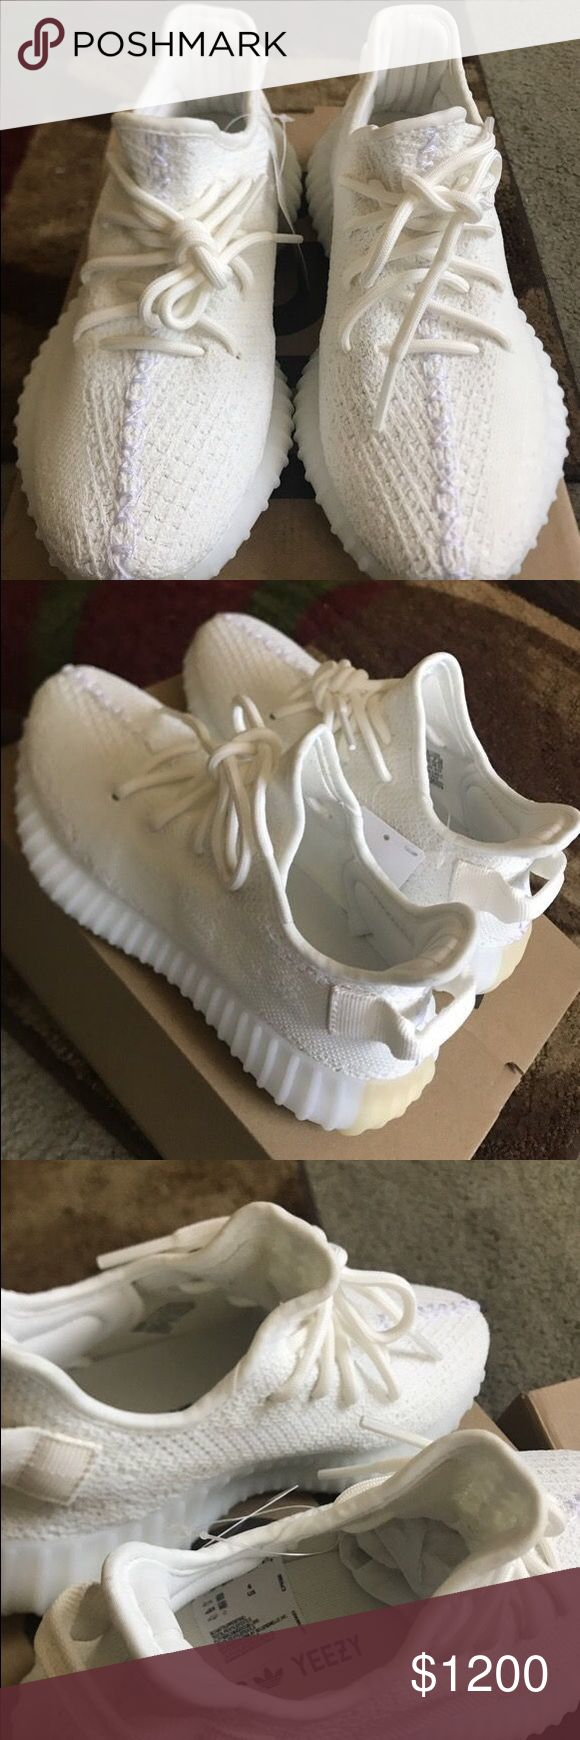 Yeezys Cream If You Wanna Buy This Item Contact Me @9122267934 & We Can Negotiate The Price & Make Great Deals :) Yeezy Shoes Sneakers